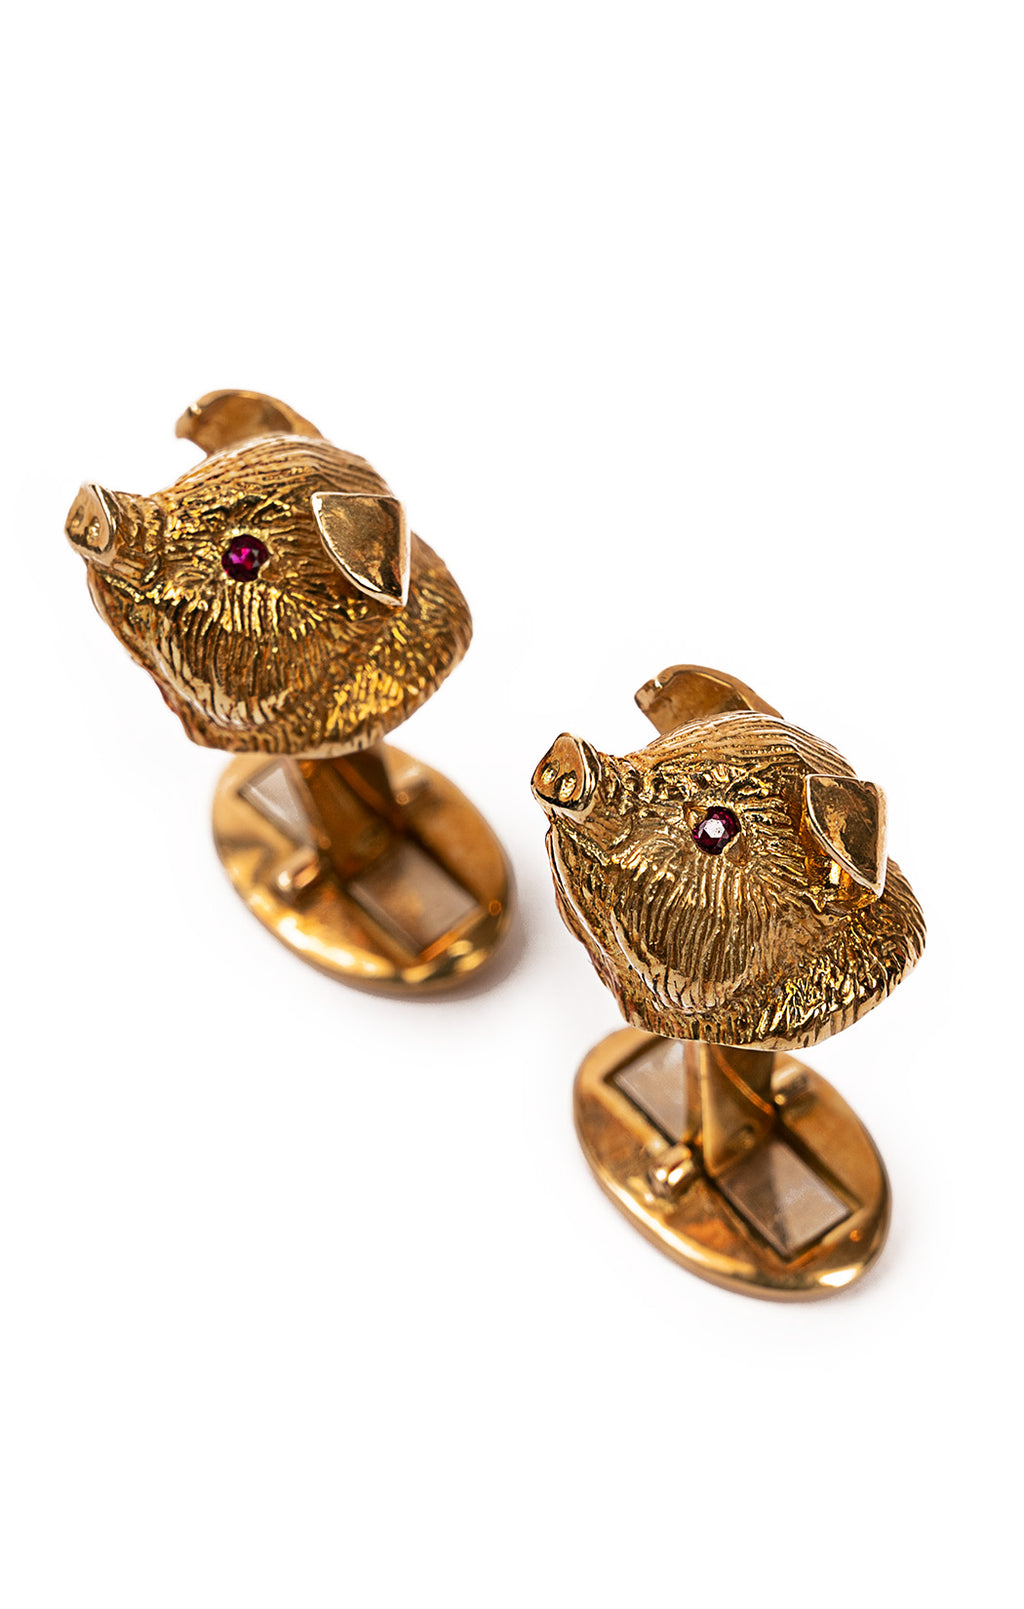 Gold textured with ruby eyes pig cufflinks